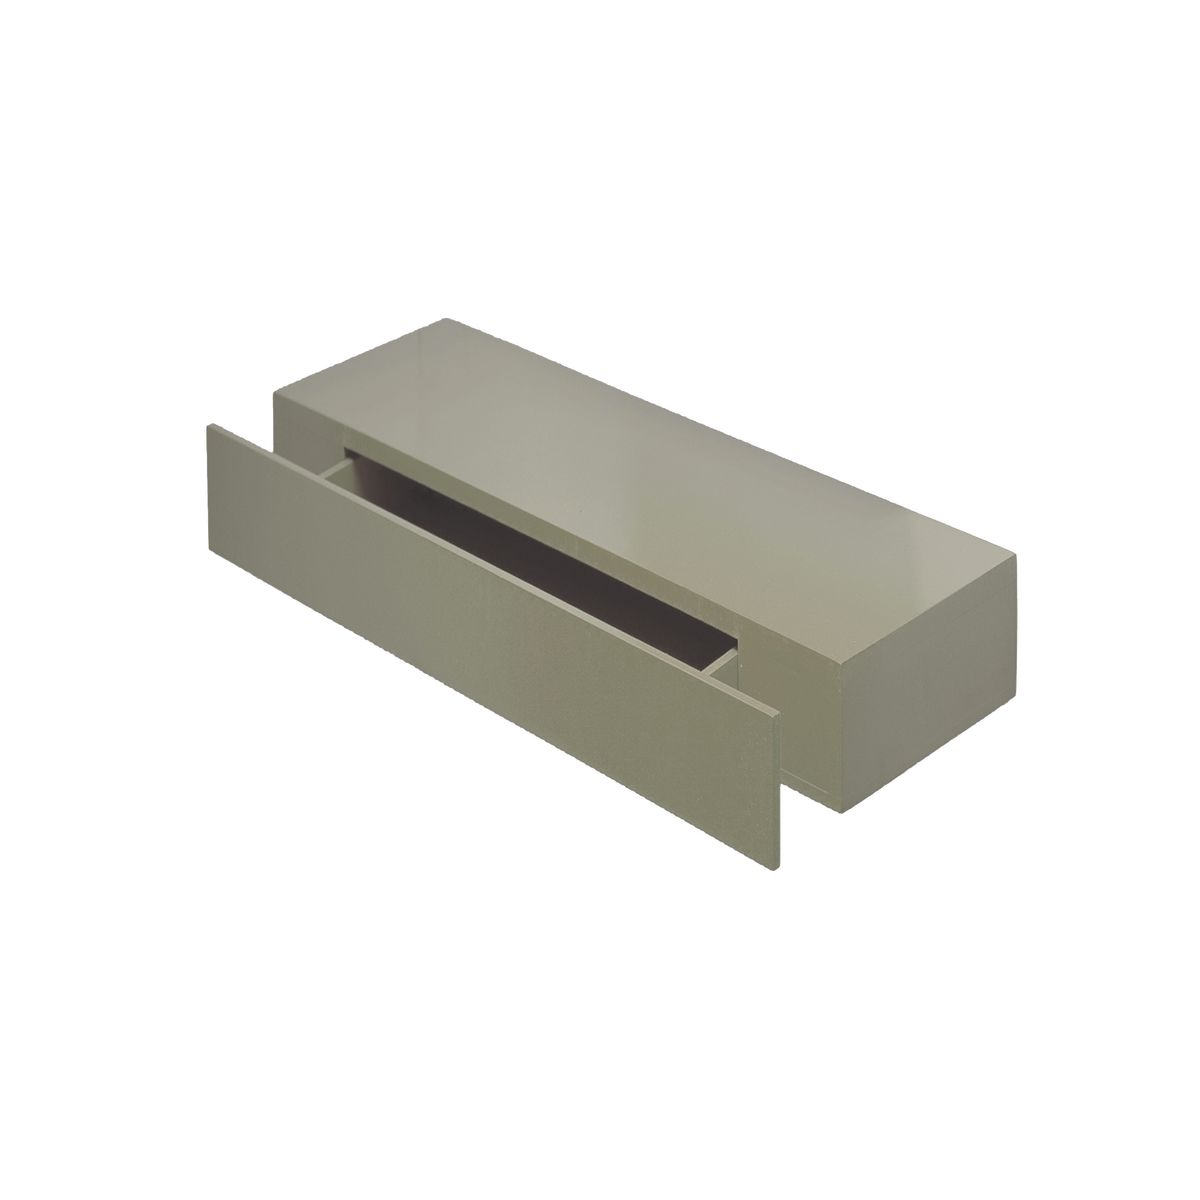 Staffe per mensole leroy merlin idea d 39 immagine di for Mensole a cubo leroy merlin